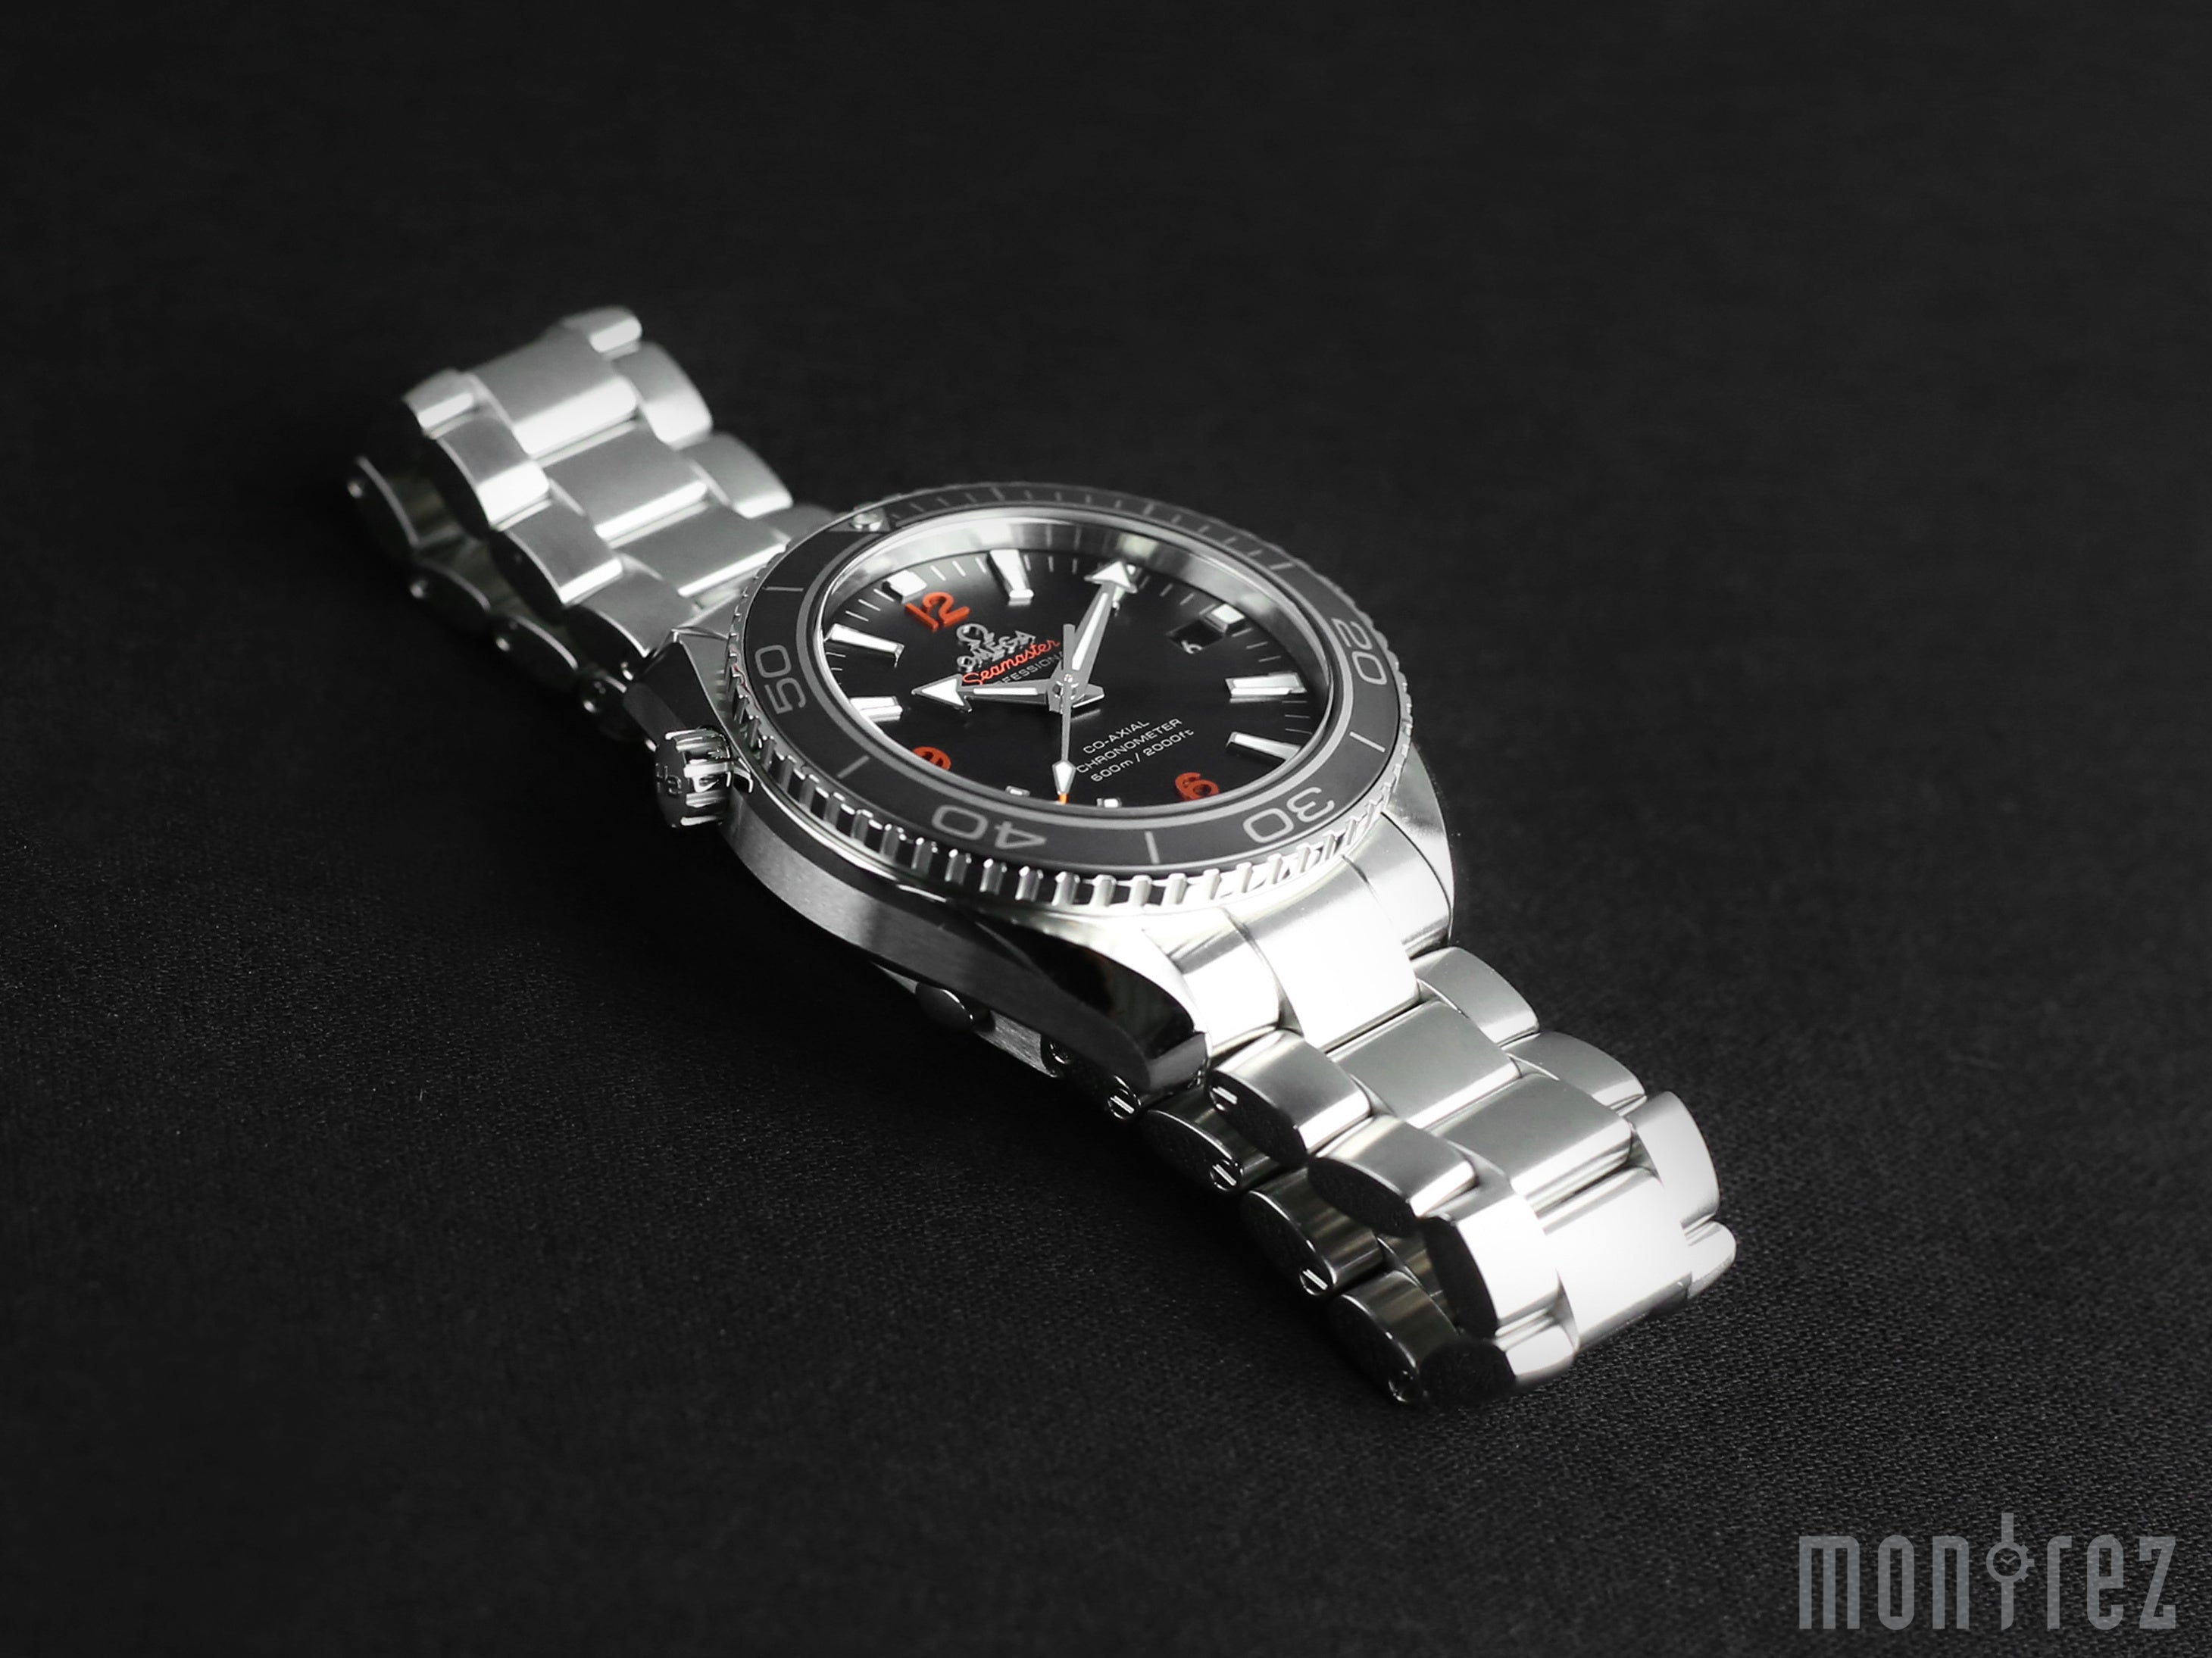 Omega Seamaster Planet Ocean 600m Co-Axial 42mm 232.30.42.21.01.003 (Out of Production)